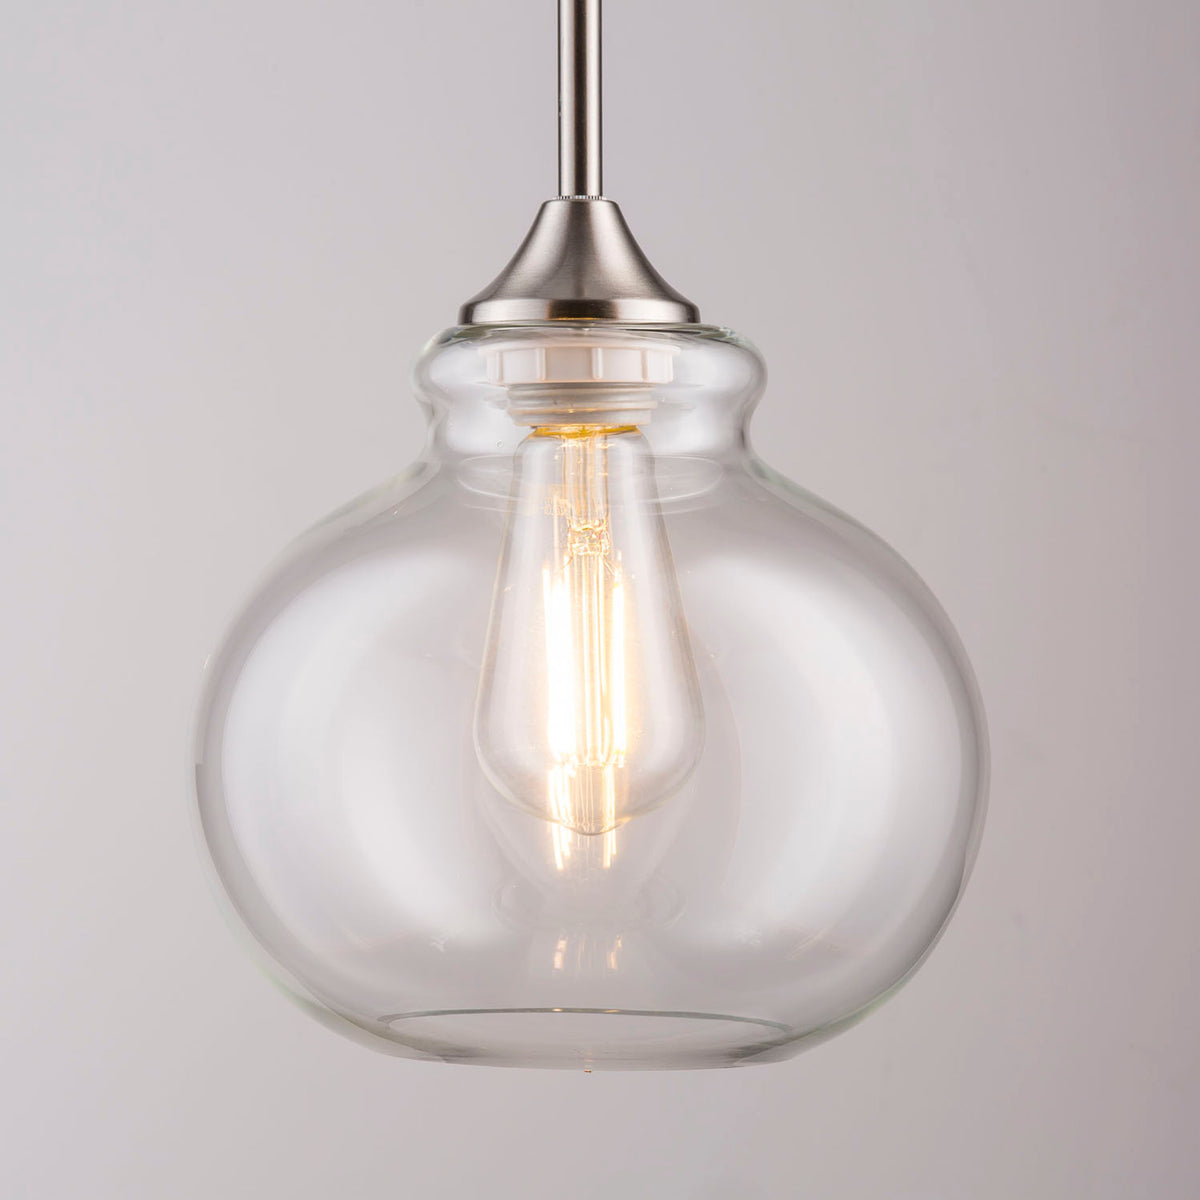 Ariella Casella Pendant Light Led Bulb Included Amp Linea